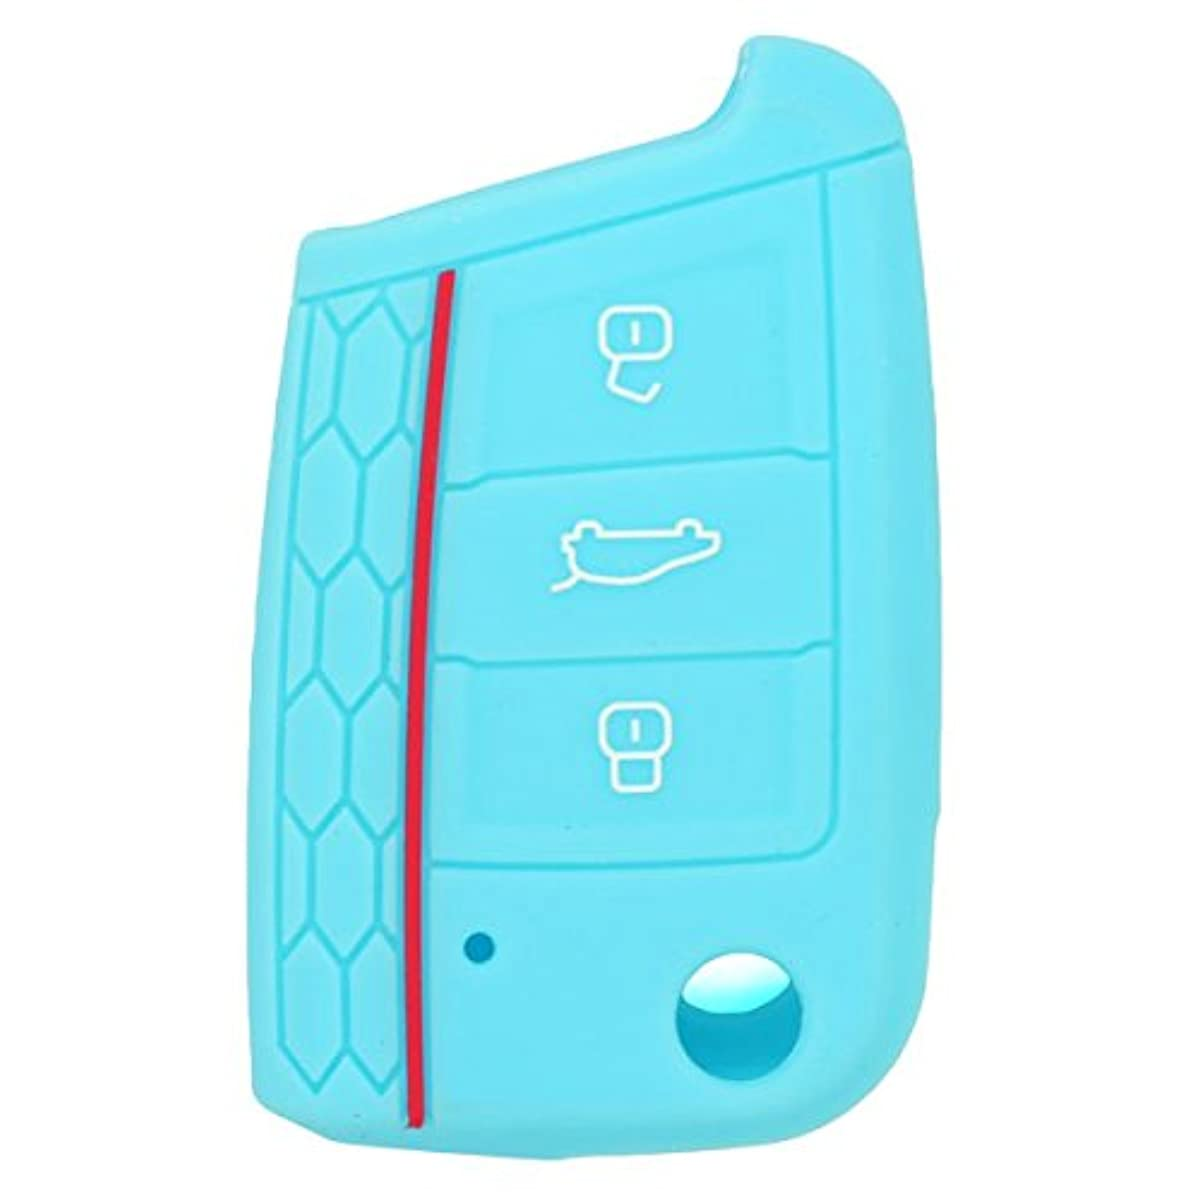 SEGADEN Silicone Cover Protector Case Skin Jacket fit for VOLKSWAGEN 3 Button Remote Key Fob CV9801 Light Blue